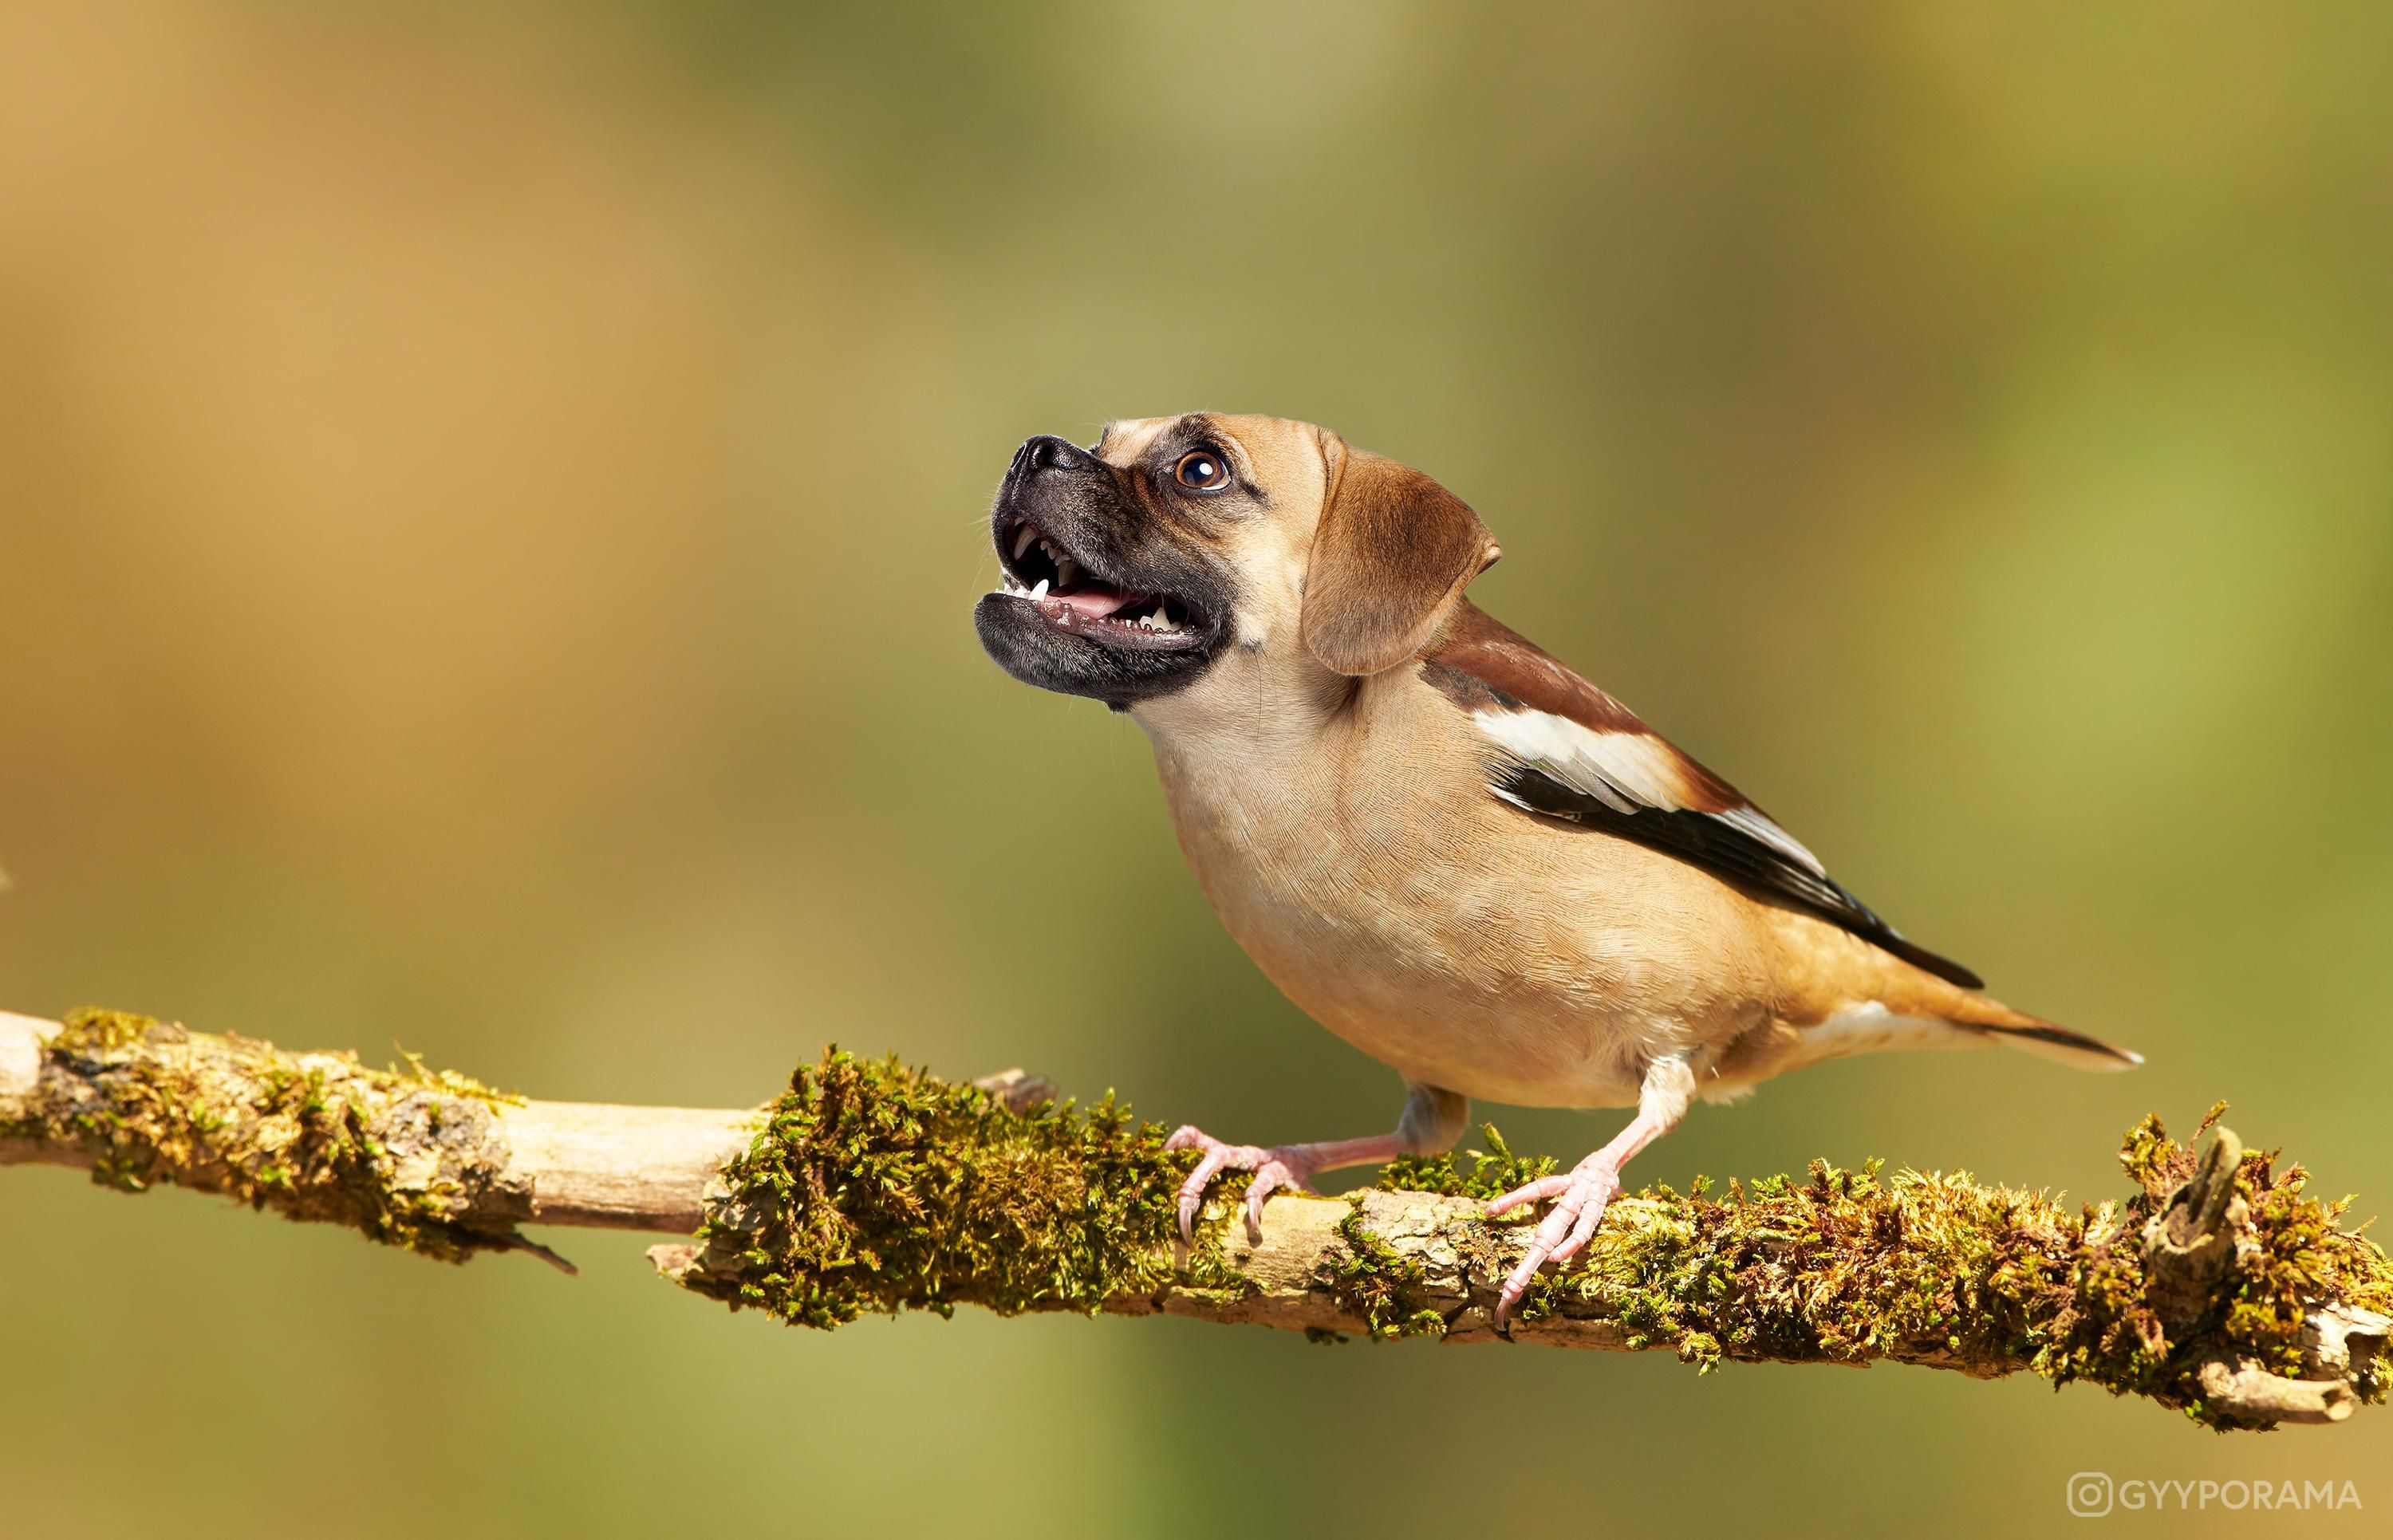 I mixed a finch with a puggle for your amusement